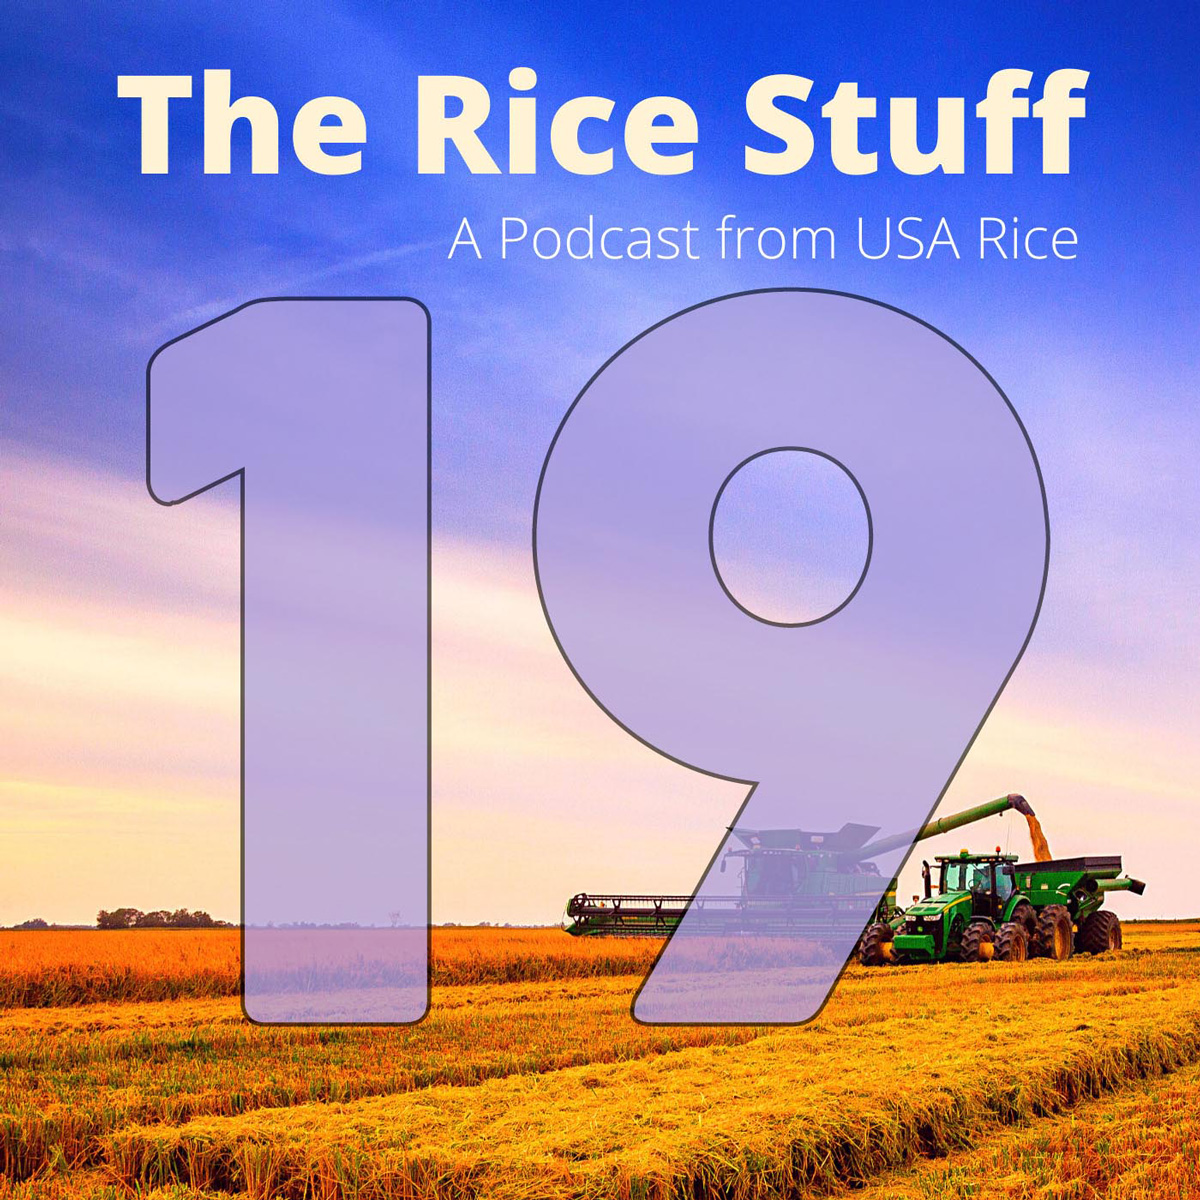 Number 19 superimposed over photo of combine and grain cart in mature rice field